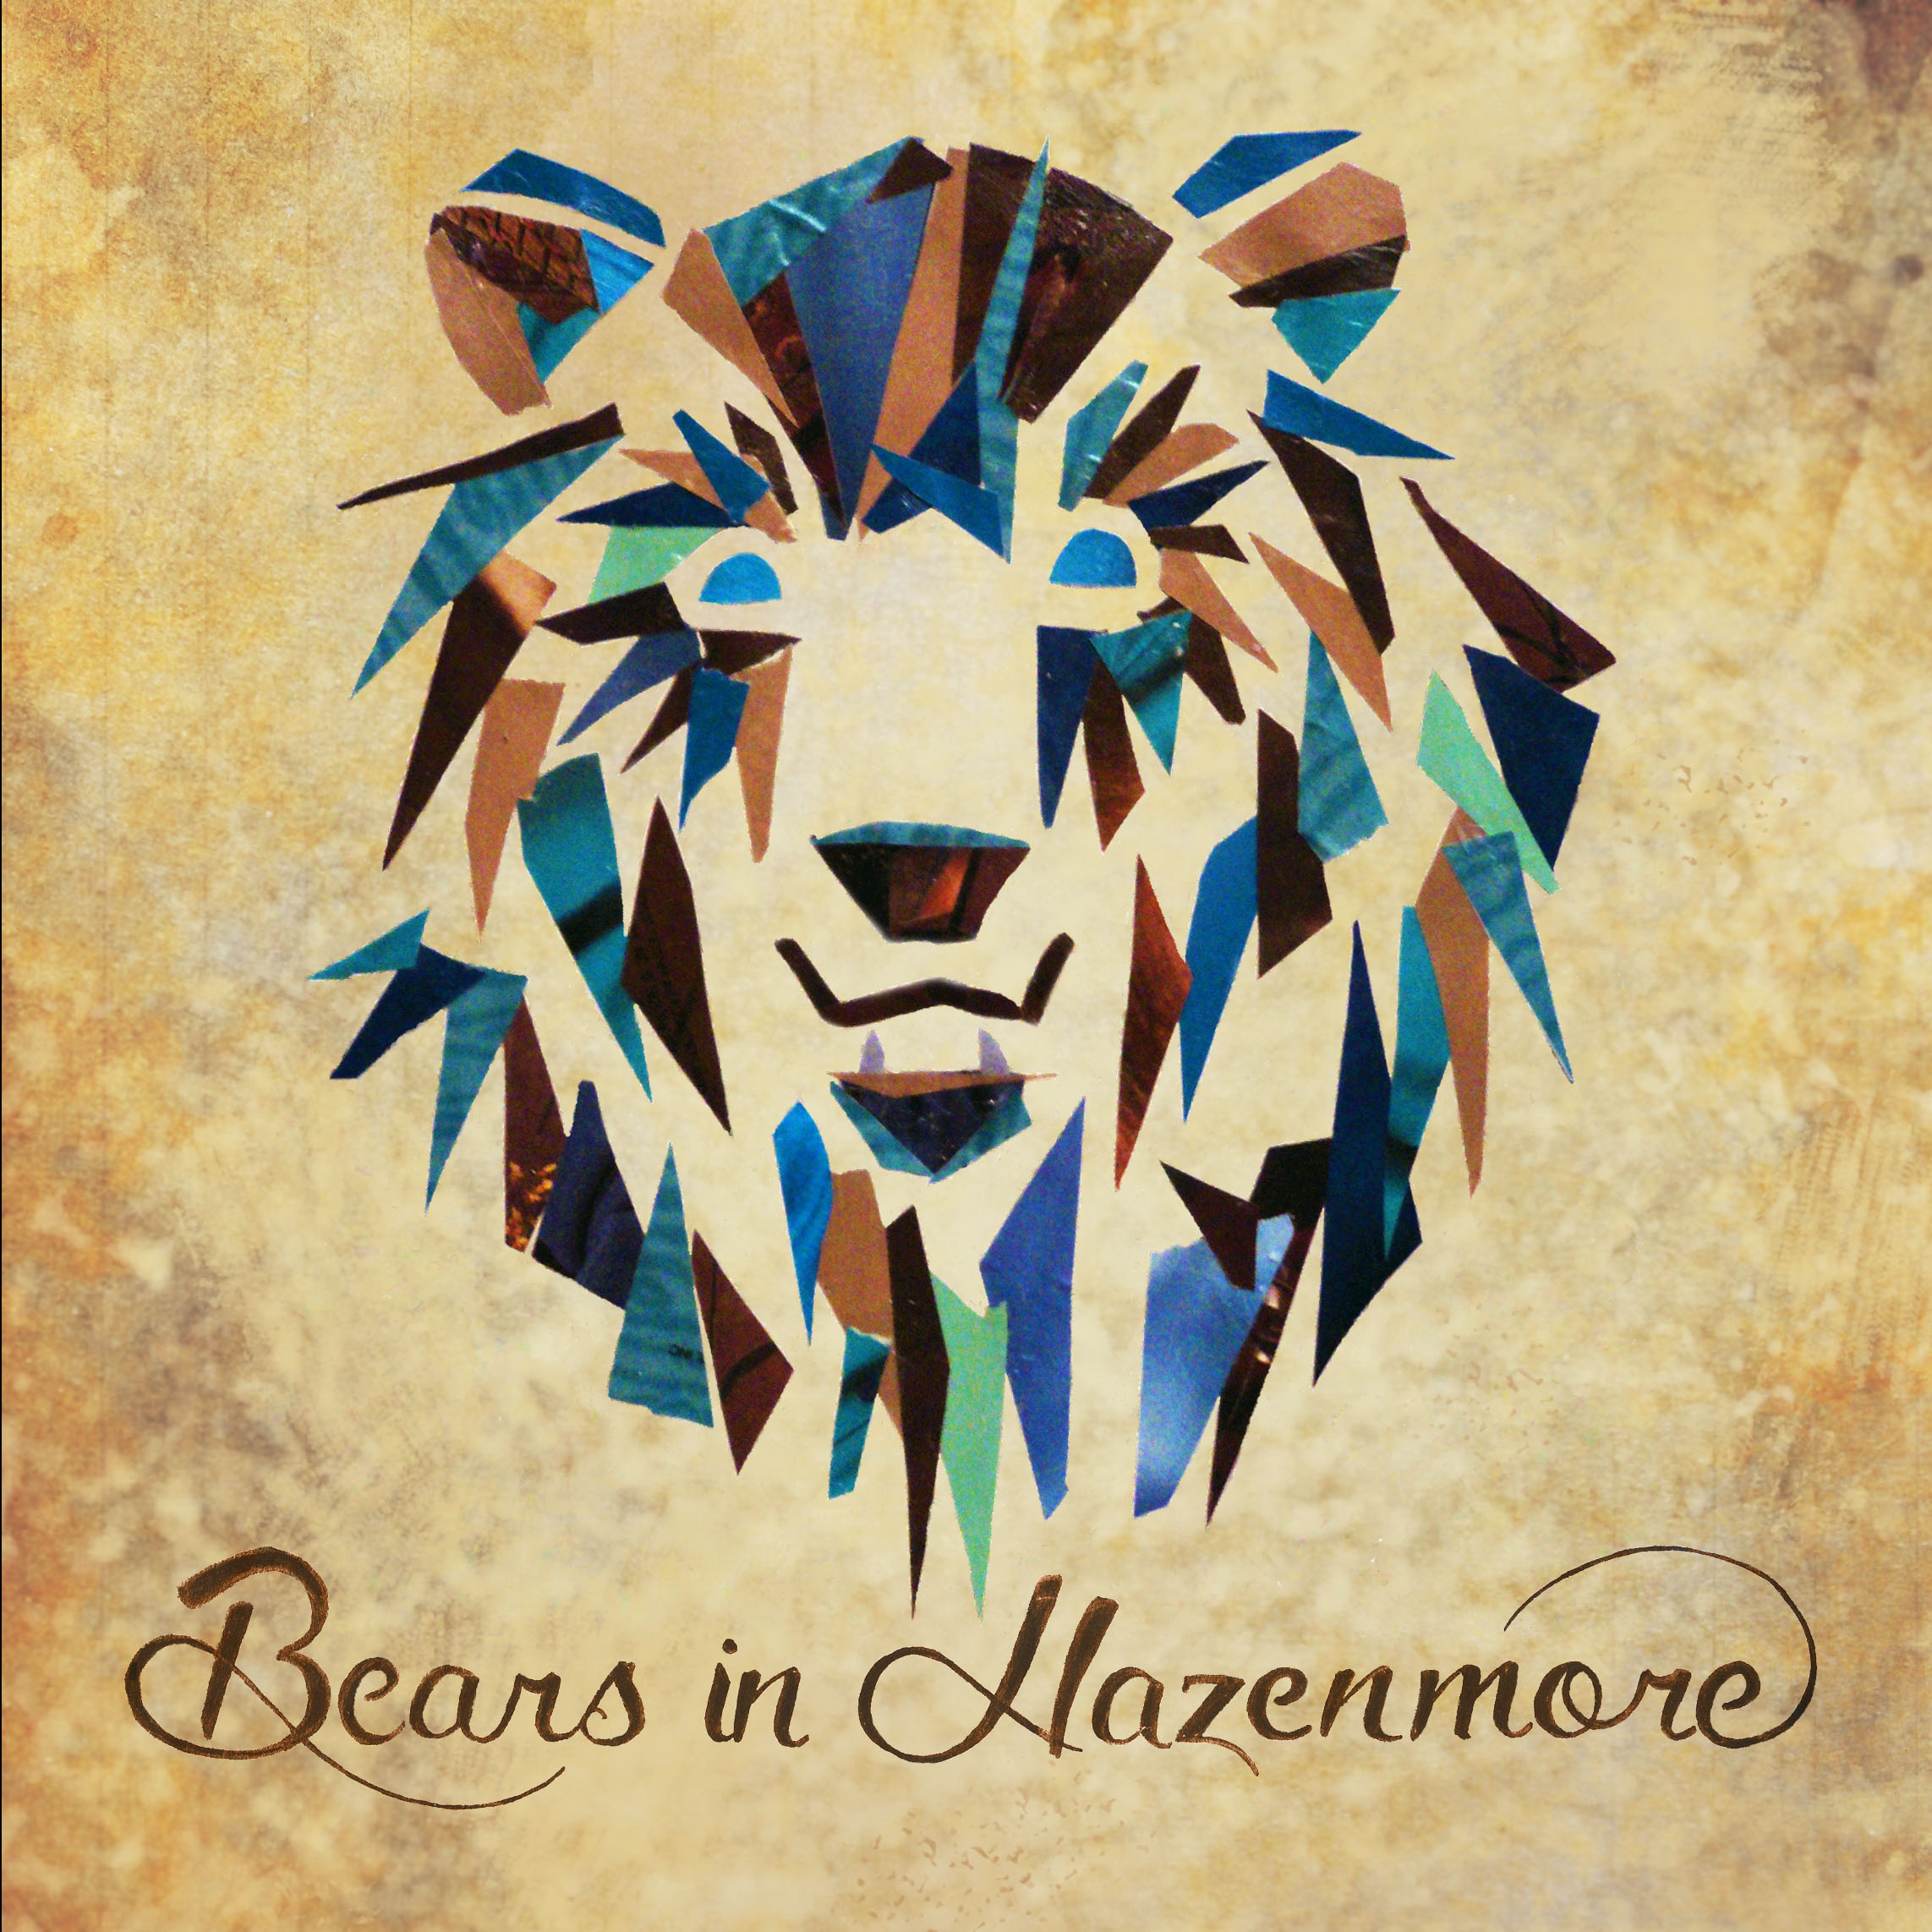 Bears in Hazenmore EP Cover